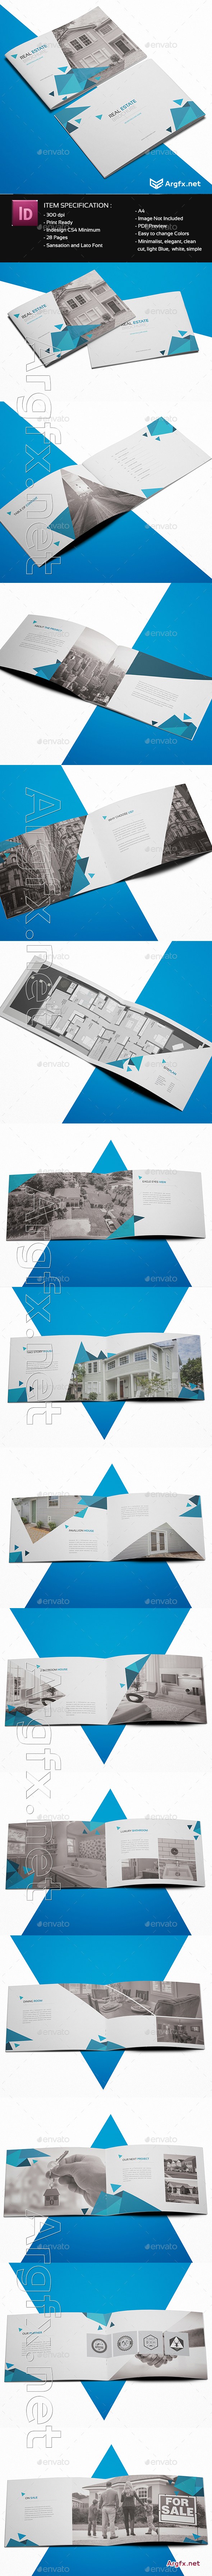 Real Estate Brochure 15110807